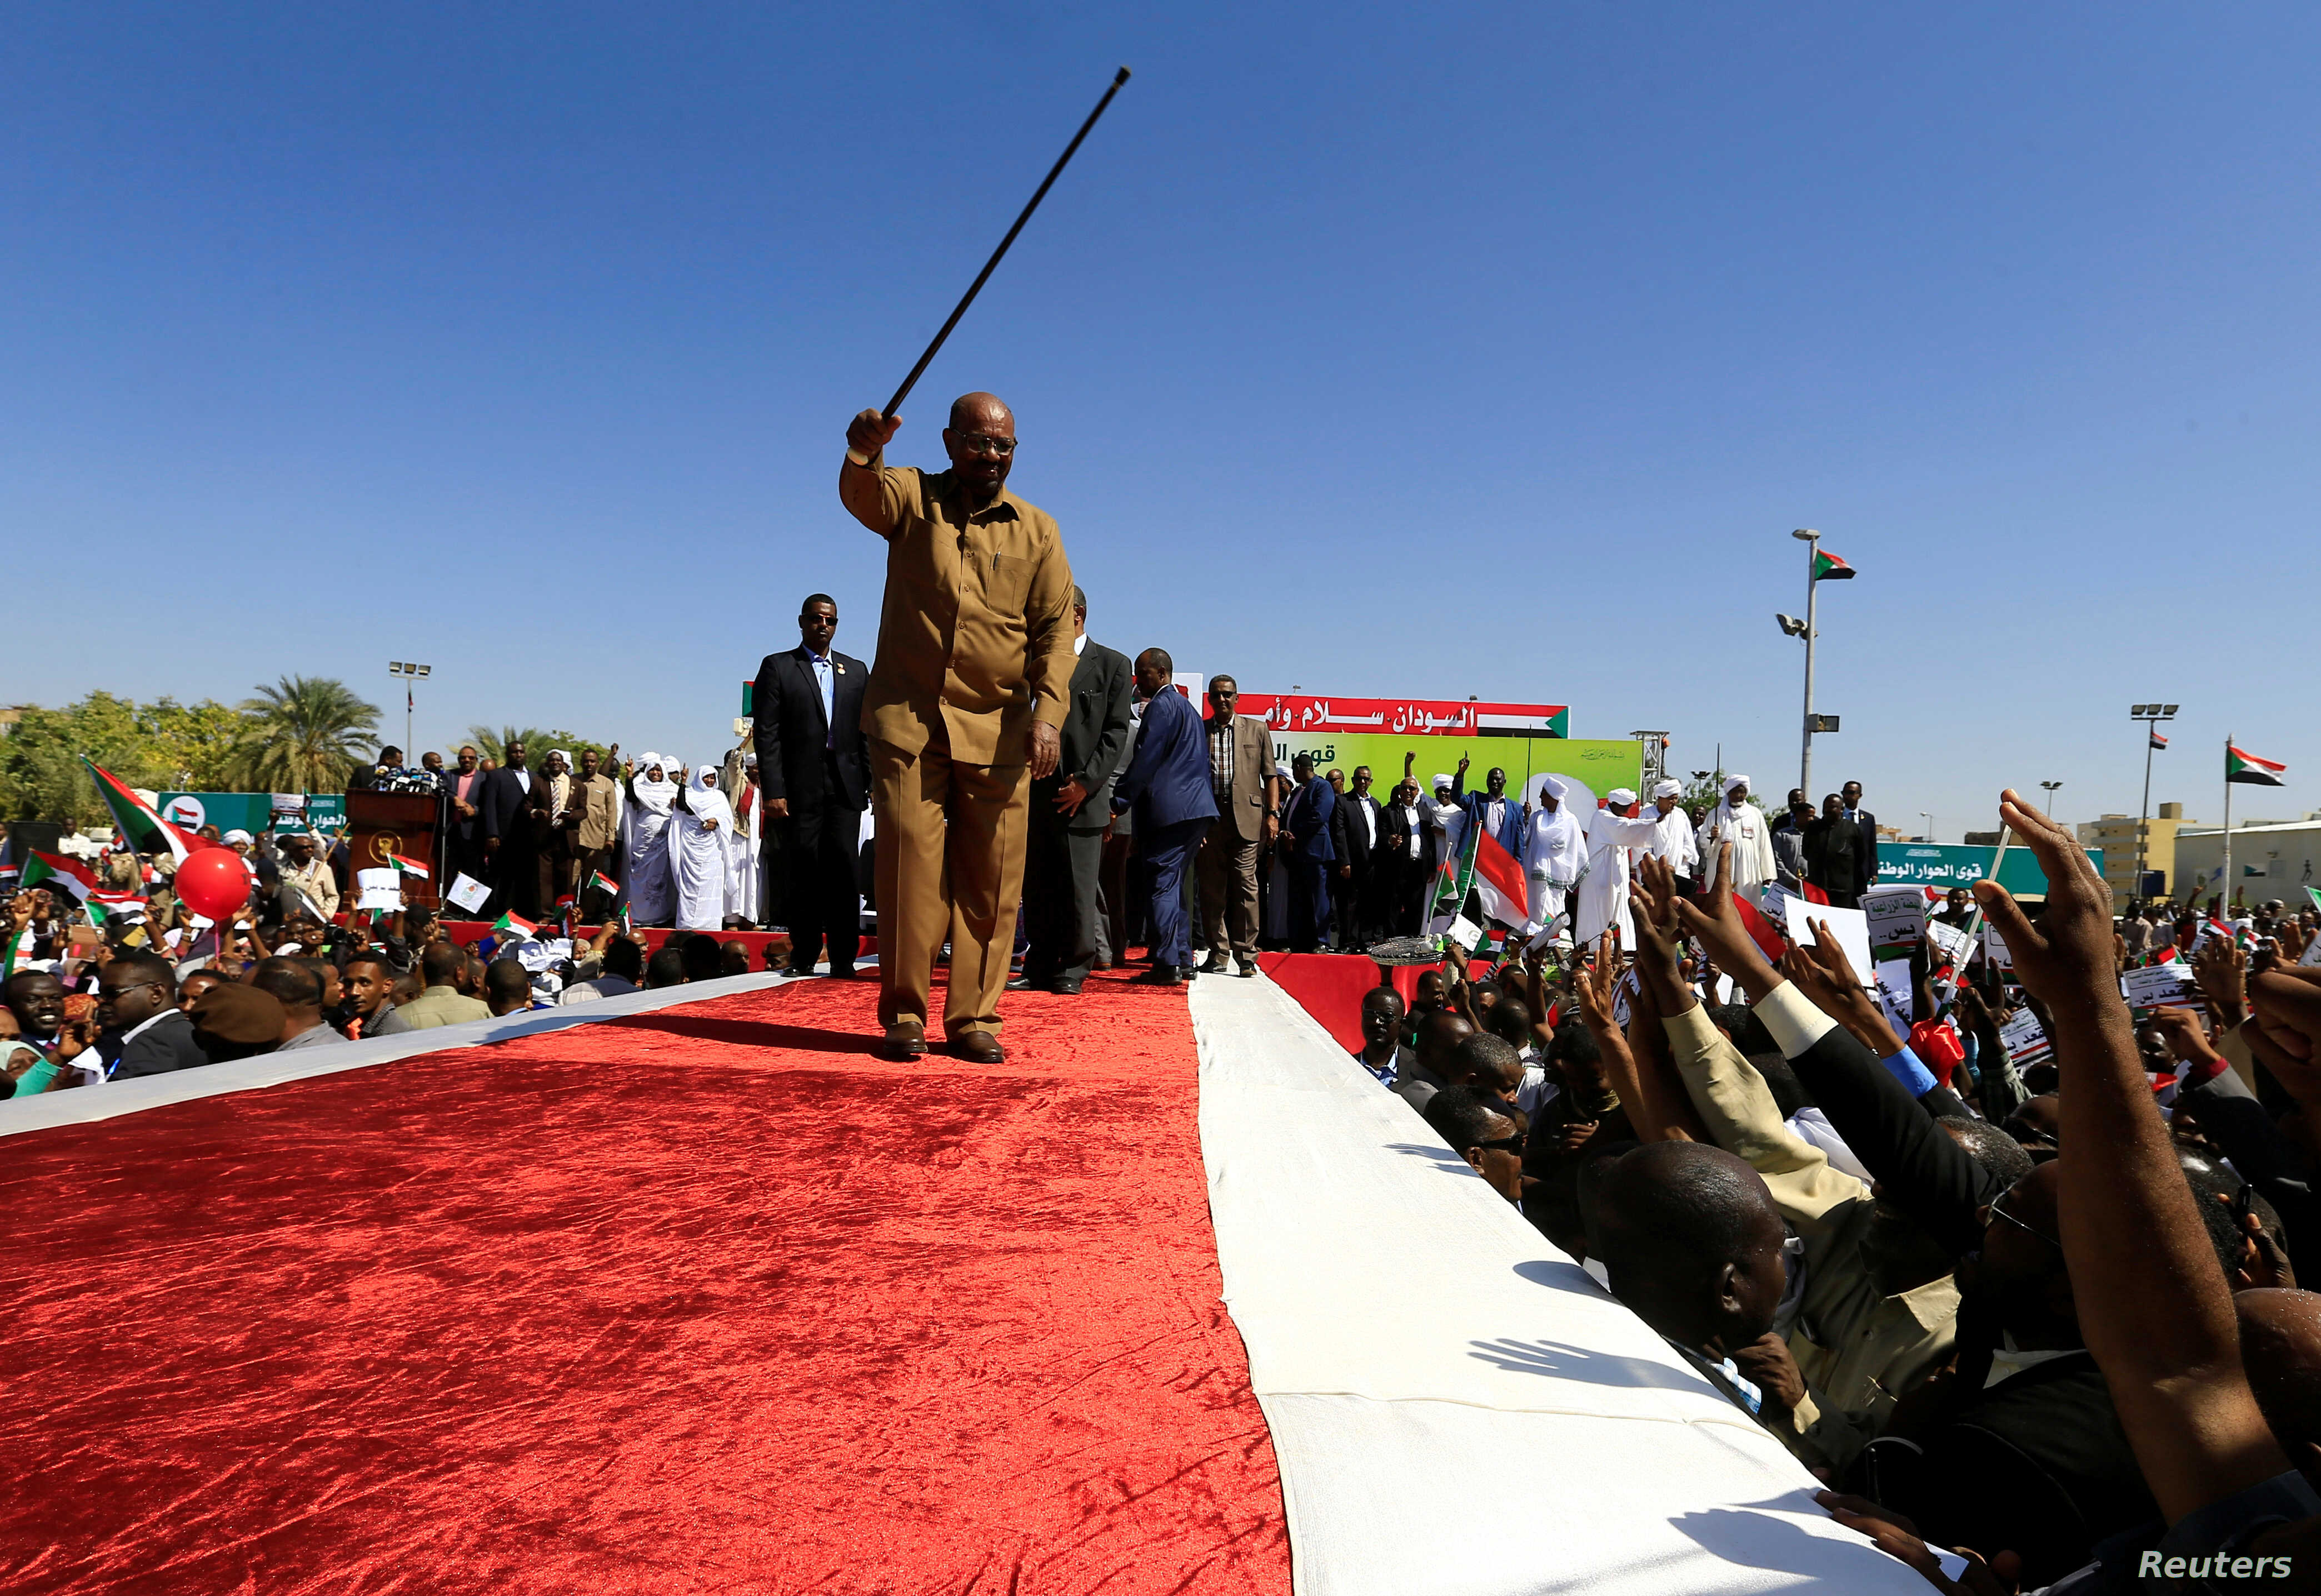 Sudan's President Omar al-Bashir waves to his supporters during a rally at the Green Square in Khartoum, Sudan, Jan. 9, 2019.